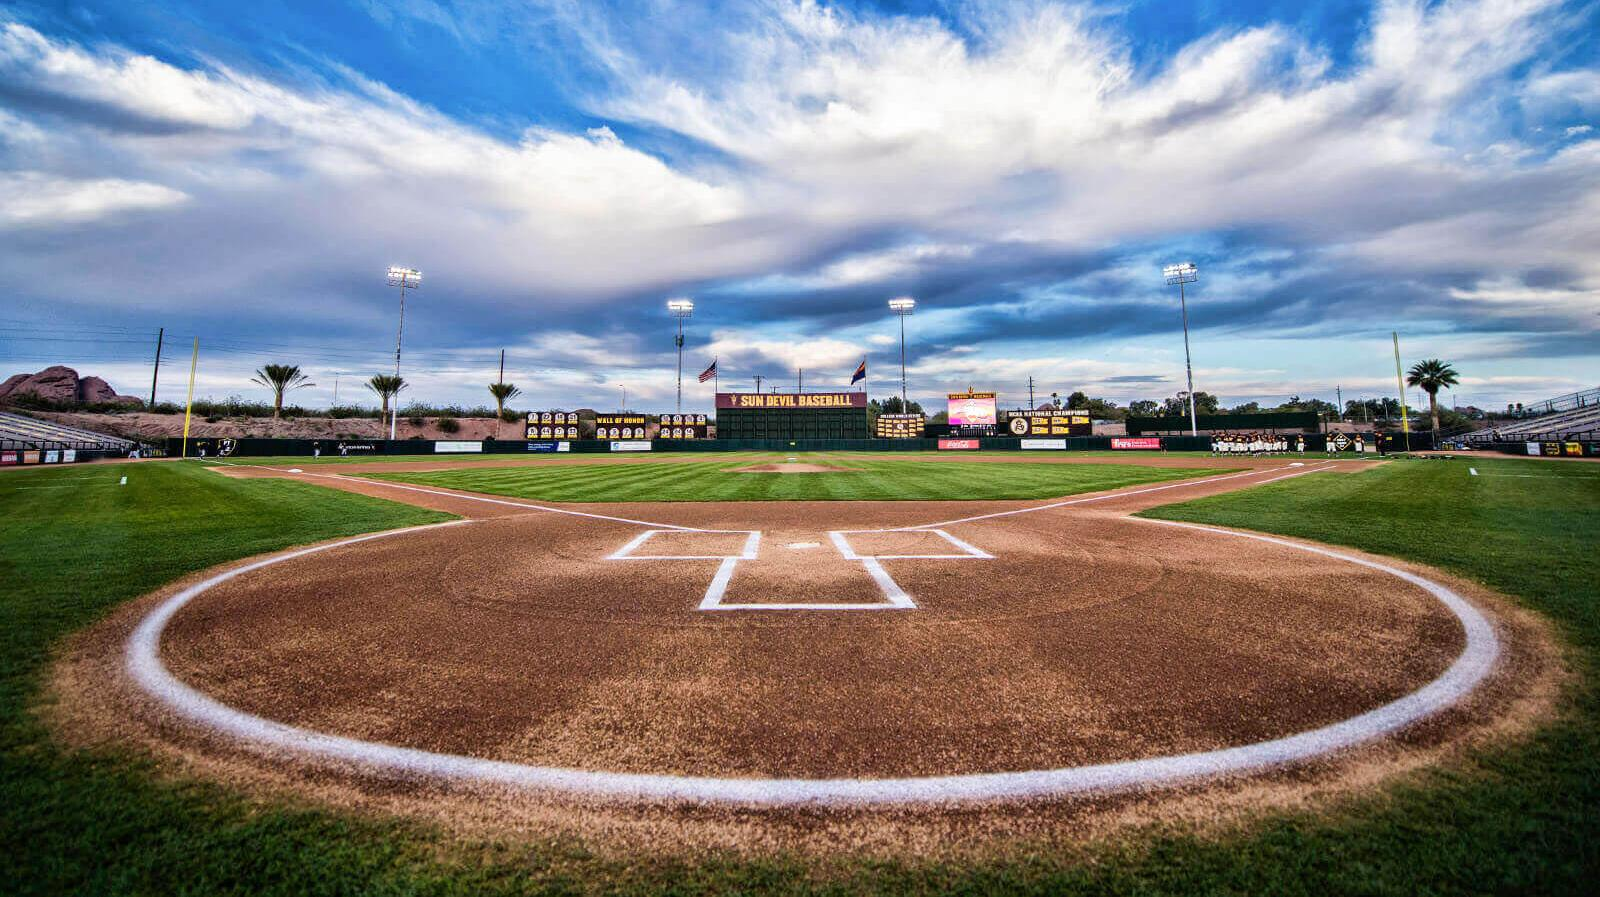 The view from home plate at Phoenix Municipal Stadium